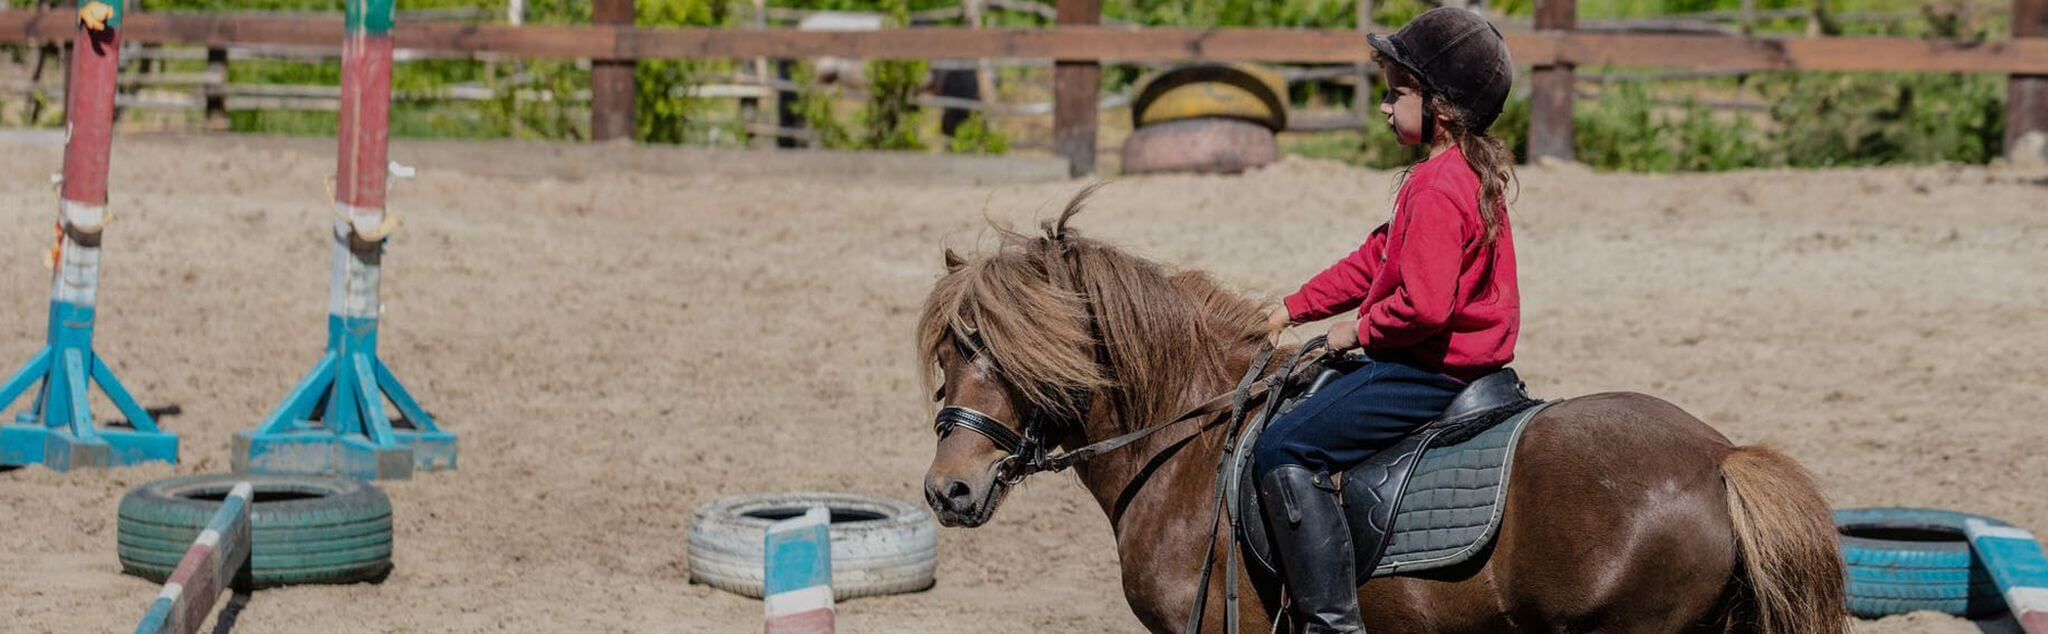 Horse Riding Lessons in Asturias